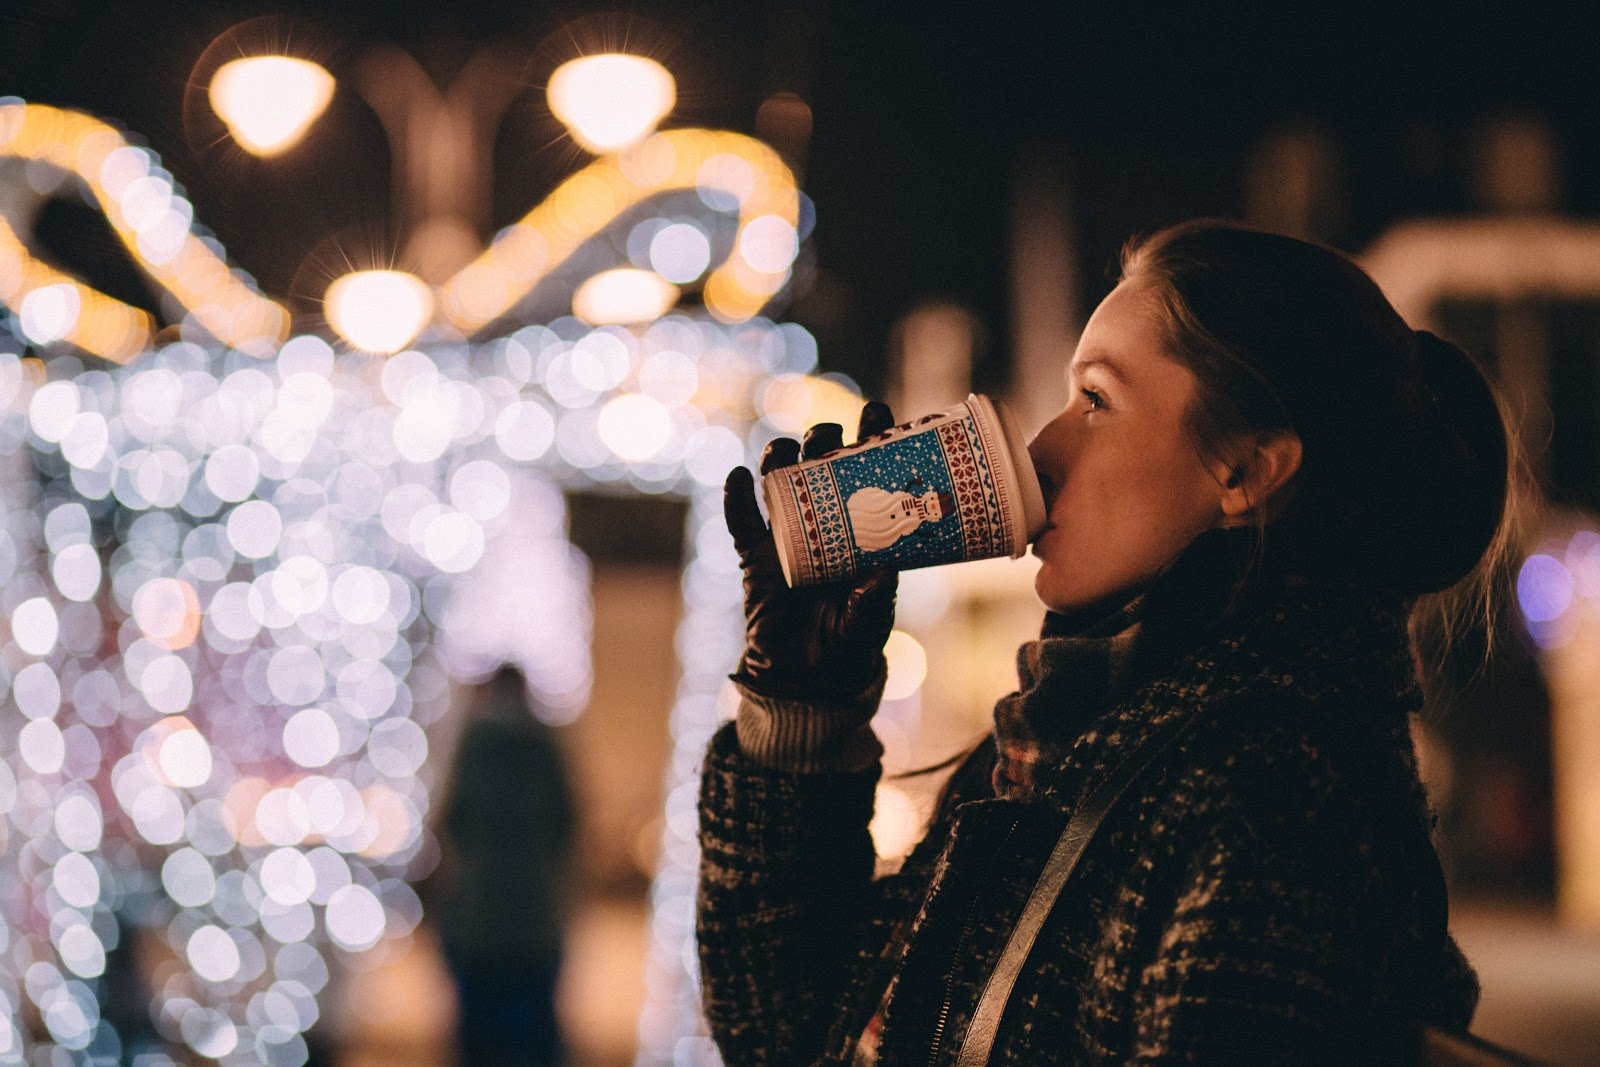 Woman drinking coffee looking at Christmas lights